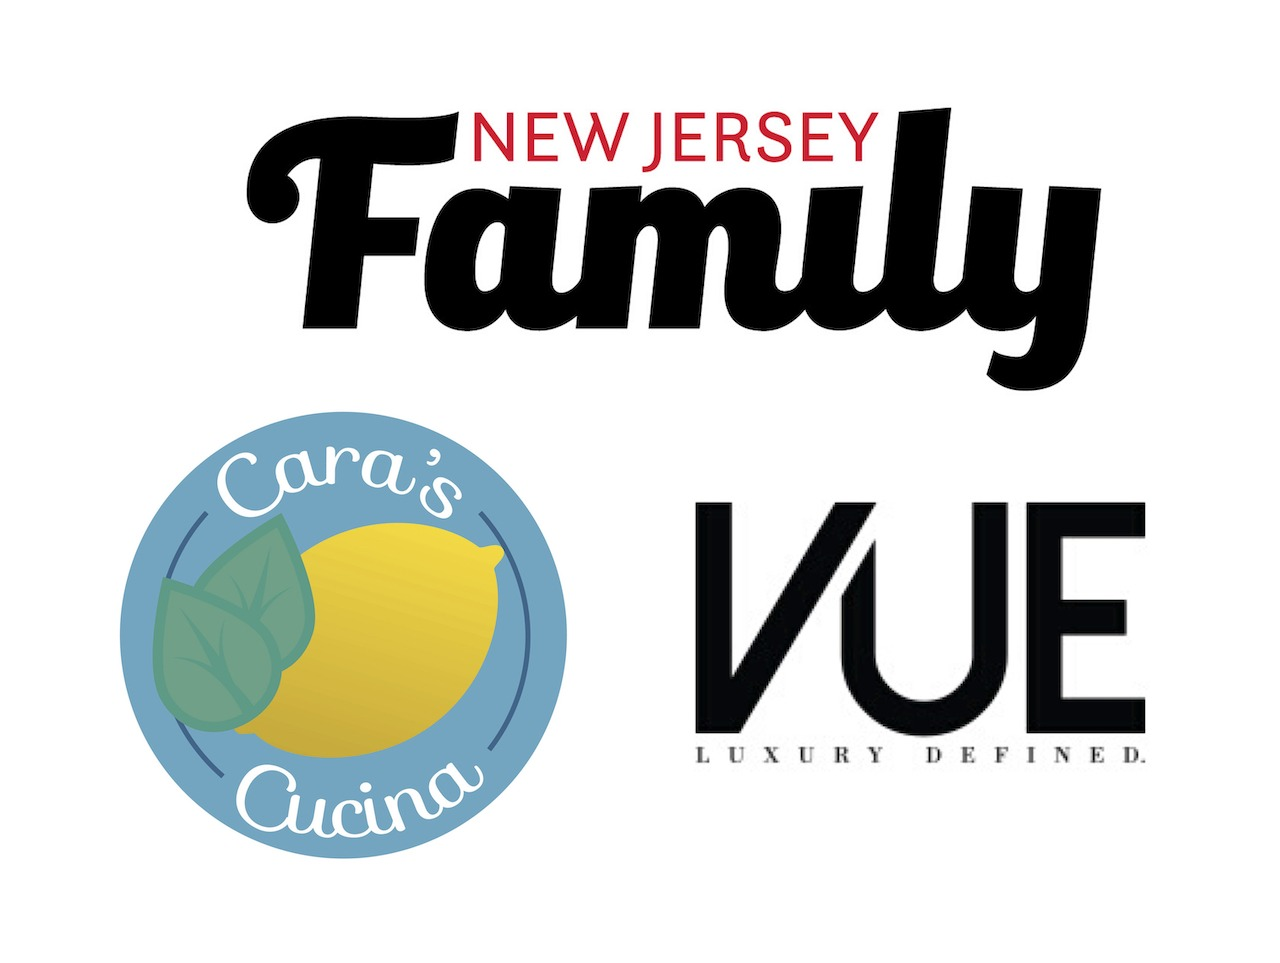 cara's cucina, cara difalco, vue magazine, New Jersey family, media partners